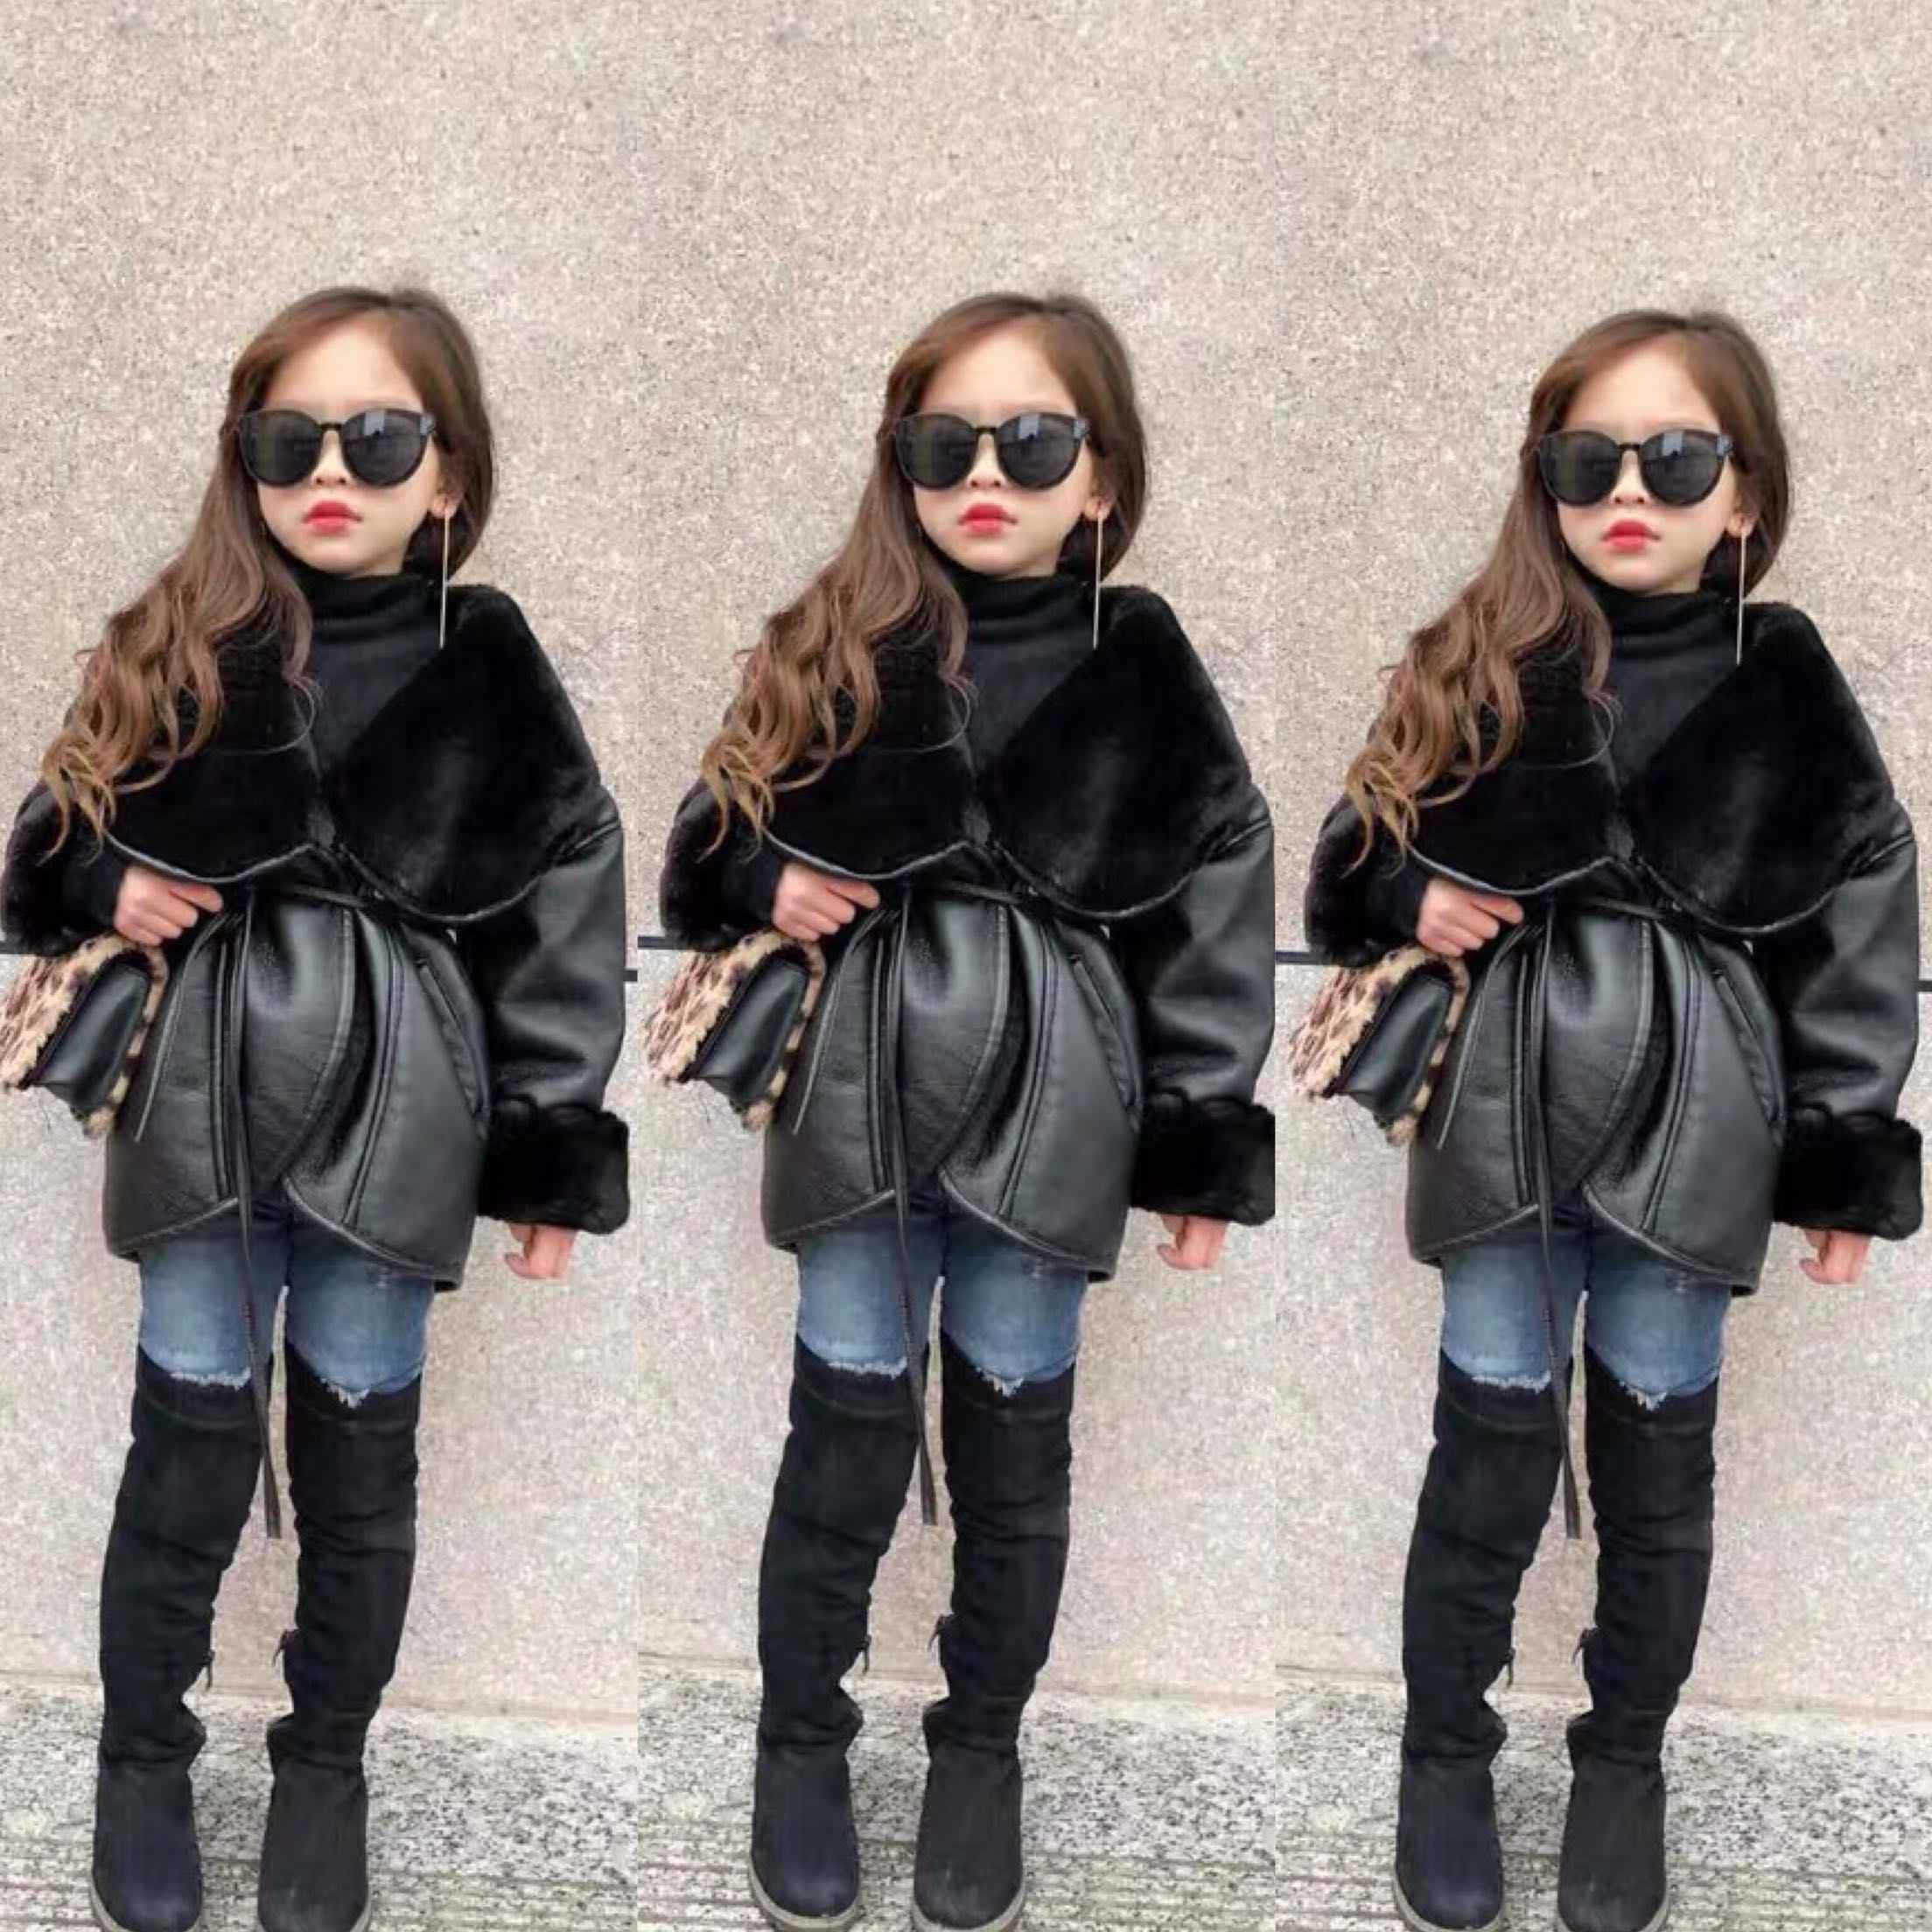 PU Leather Jackets for Kids Girls Winter Faux Leather Jackets with Fur Toddler Girls Outerwear Faux Rabbit Fur Leather Jackets